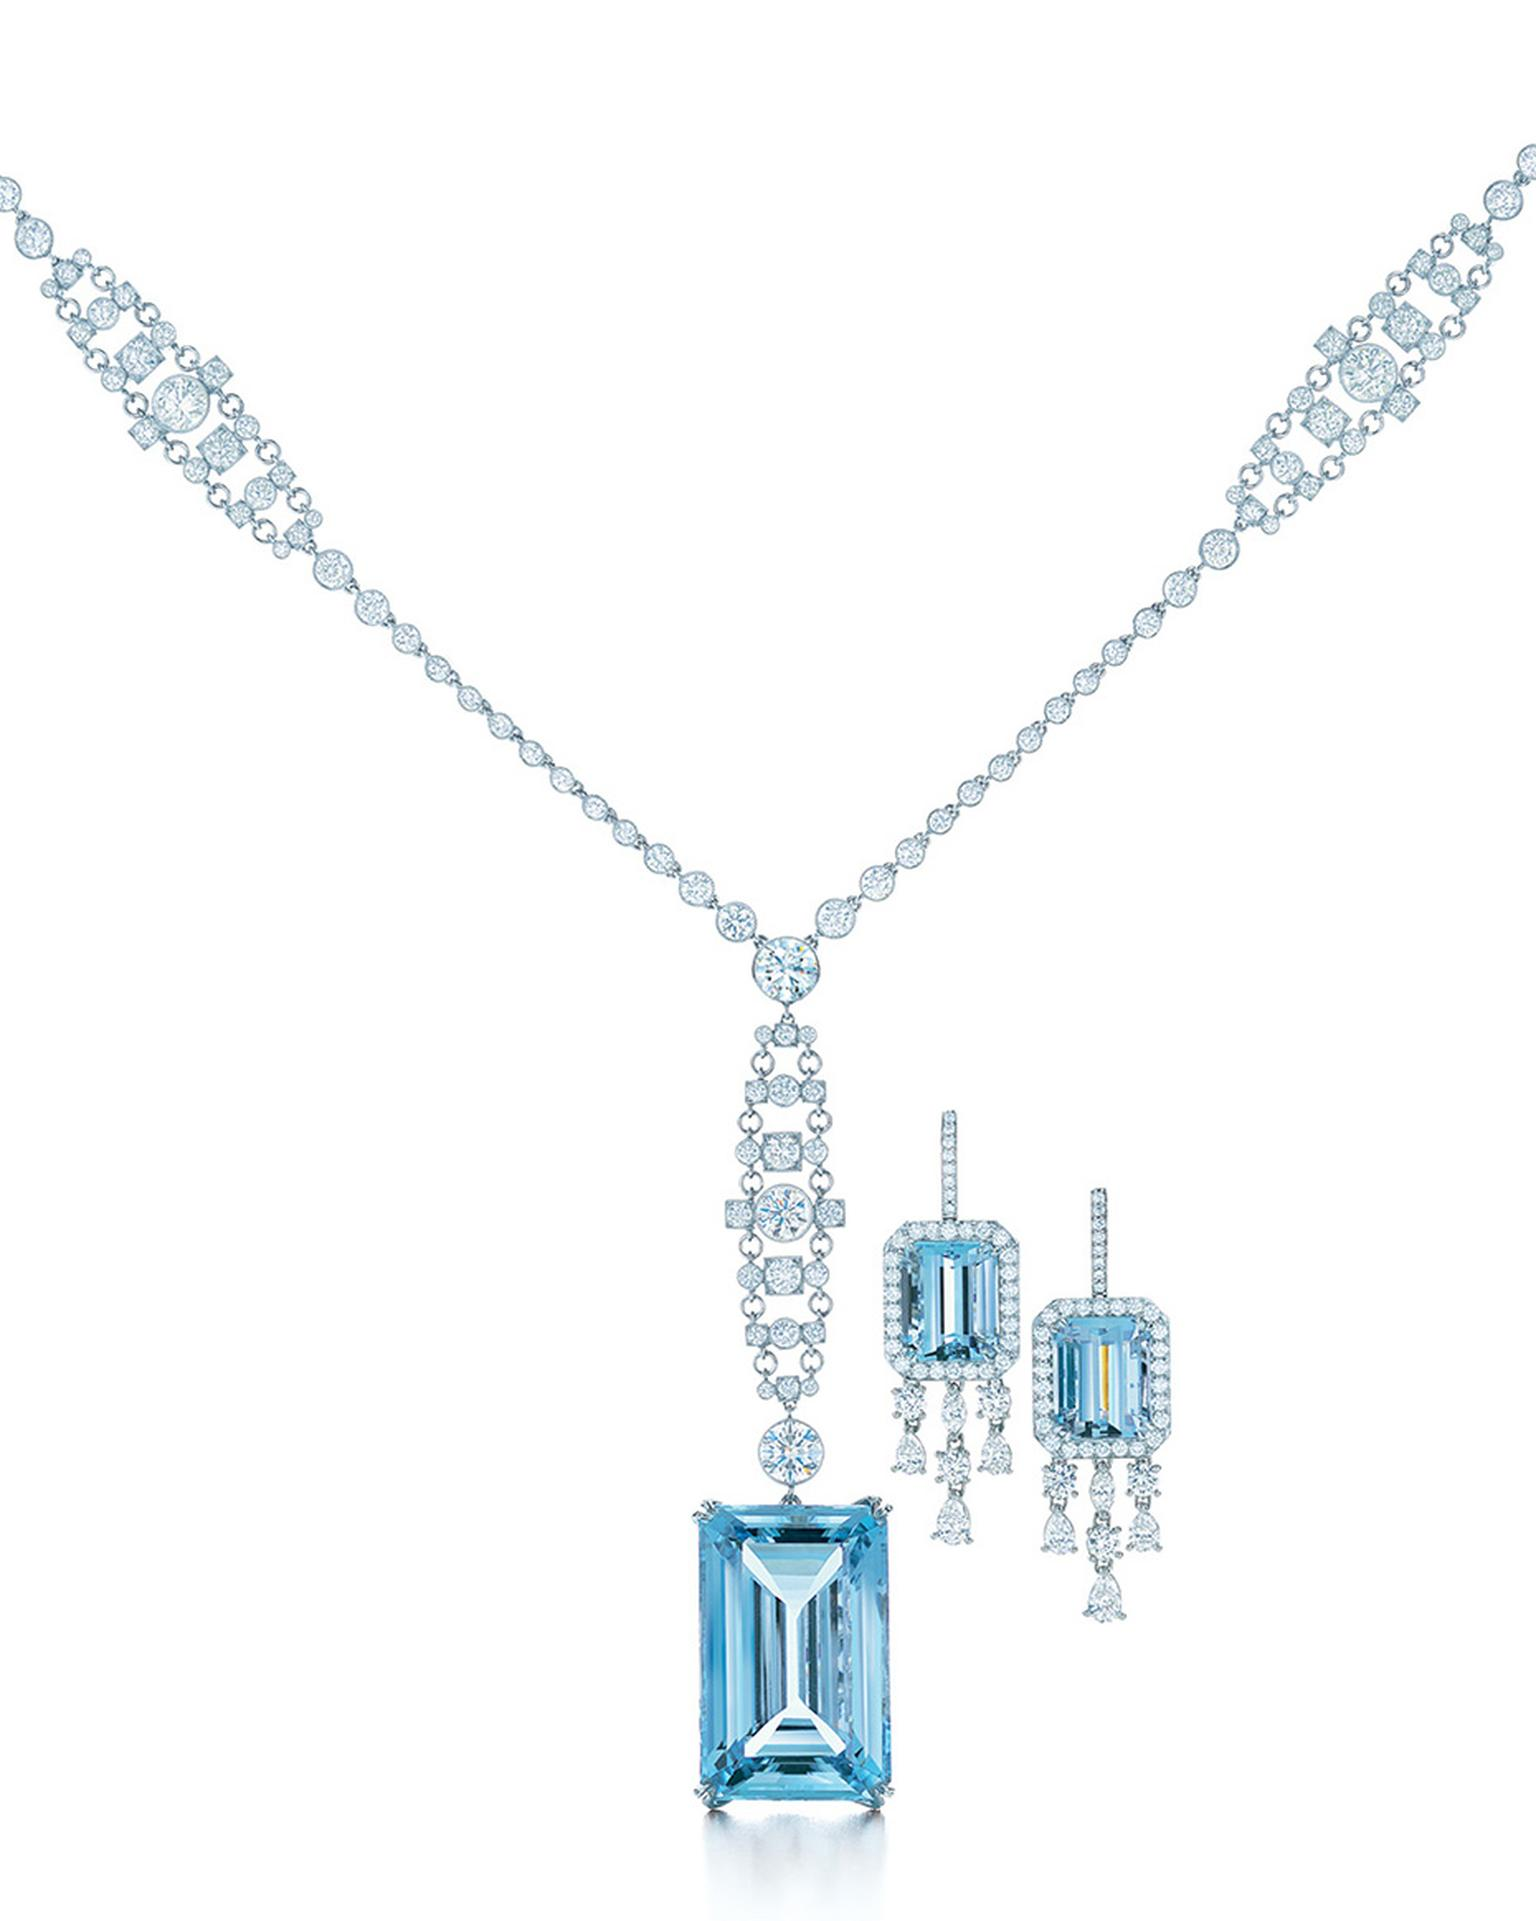 Tiffany's Great Gatsby collection platinum and diamond necklace featuring a 49.59ct emerald cut as well as platinum and diamond earrings with emerald cut aquamarines, as worn in The Great Gatsby film.